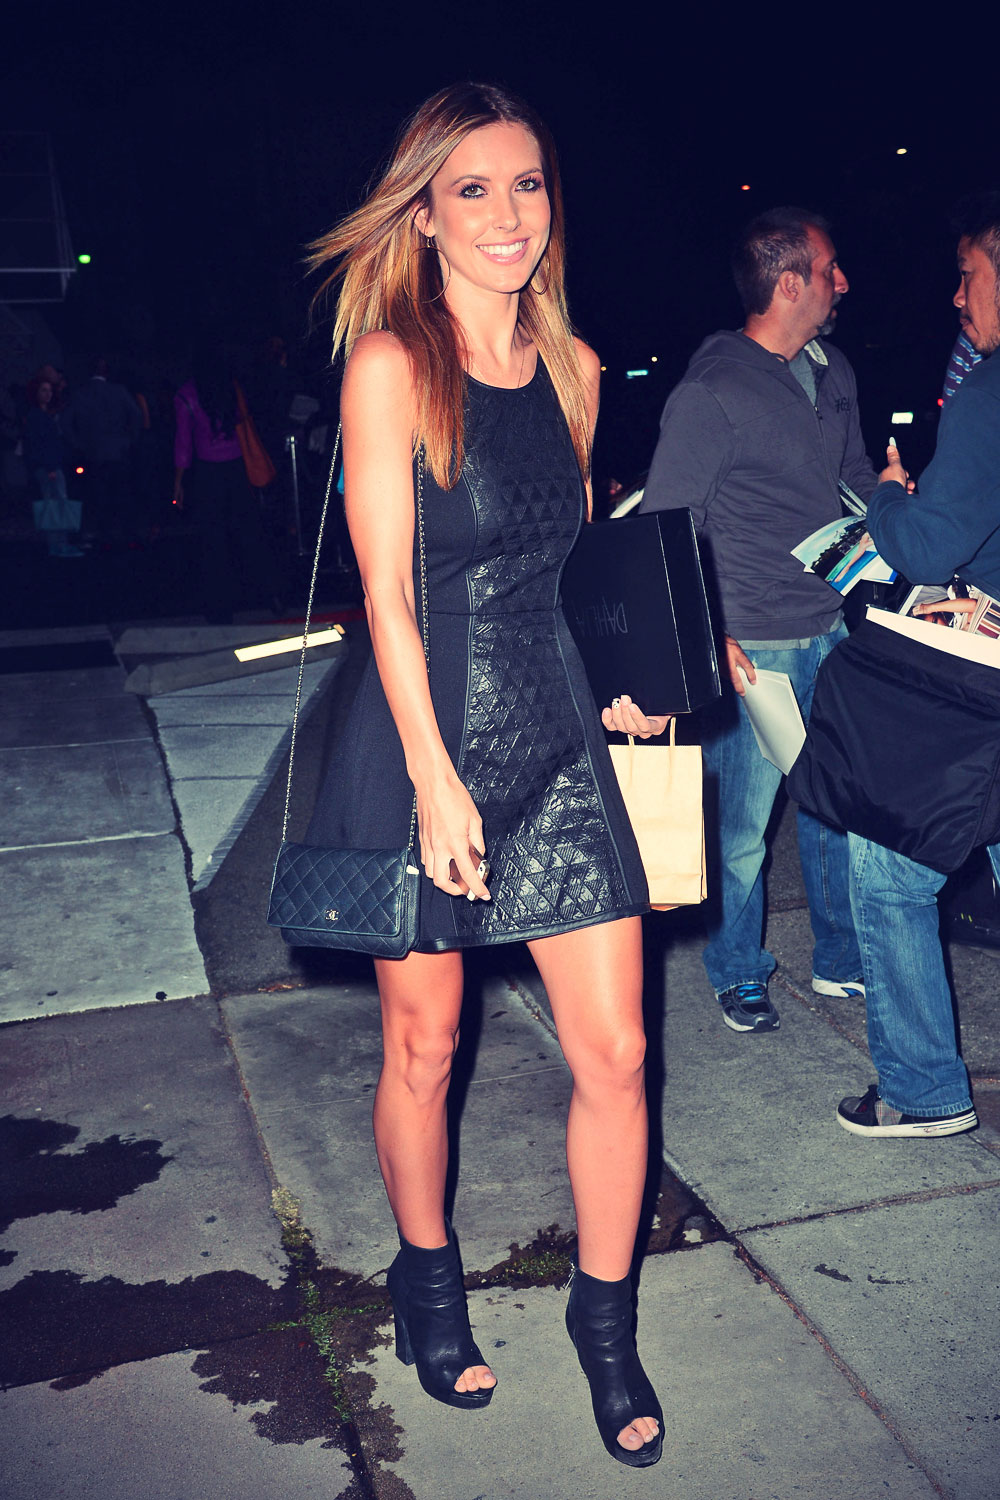 Audrina Patridge leaves a Party in West Hollywood